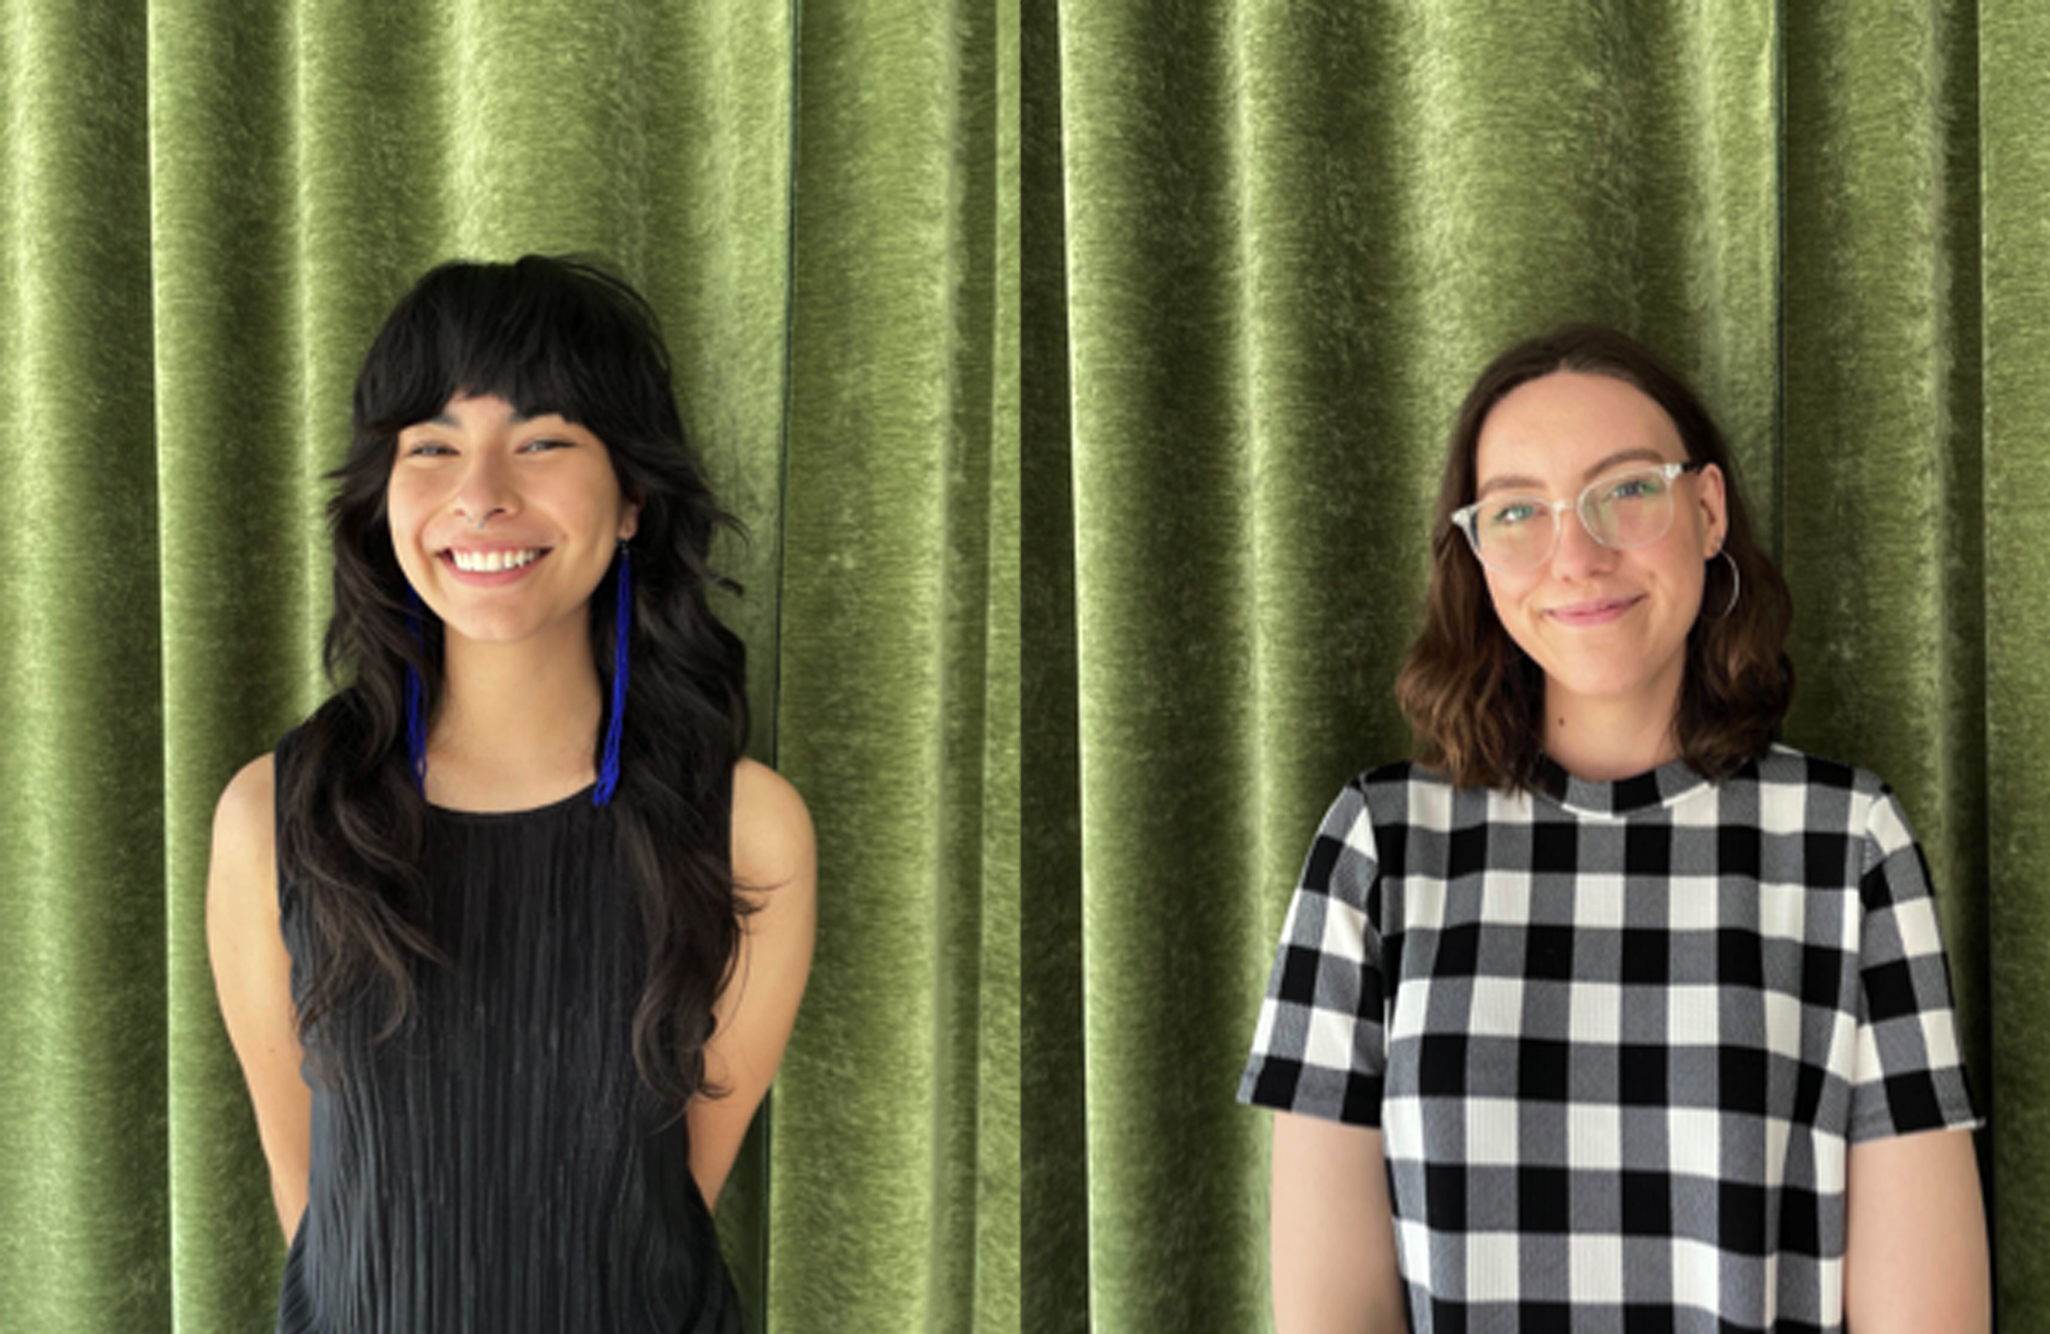 Photo of two smiling women in front of a green velvet curtain